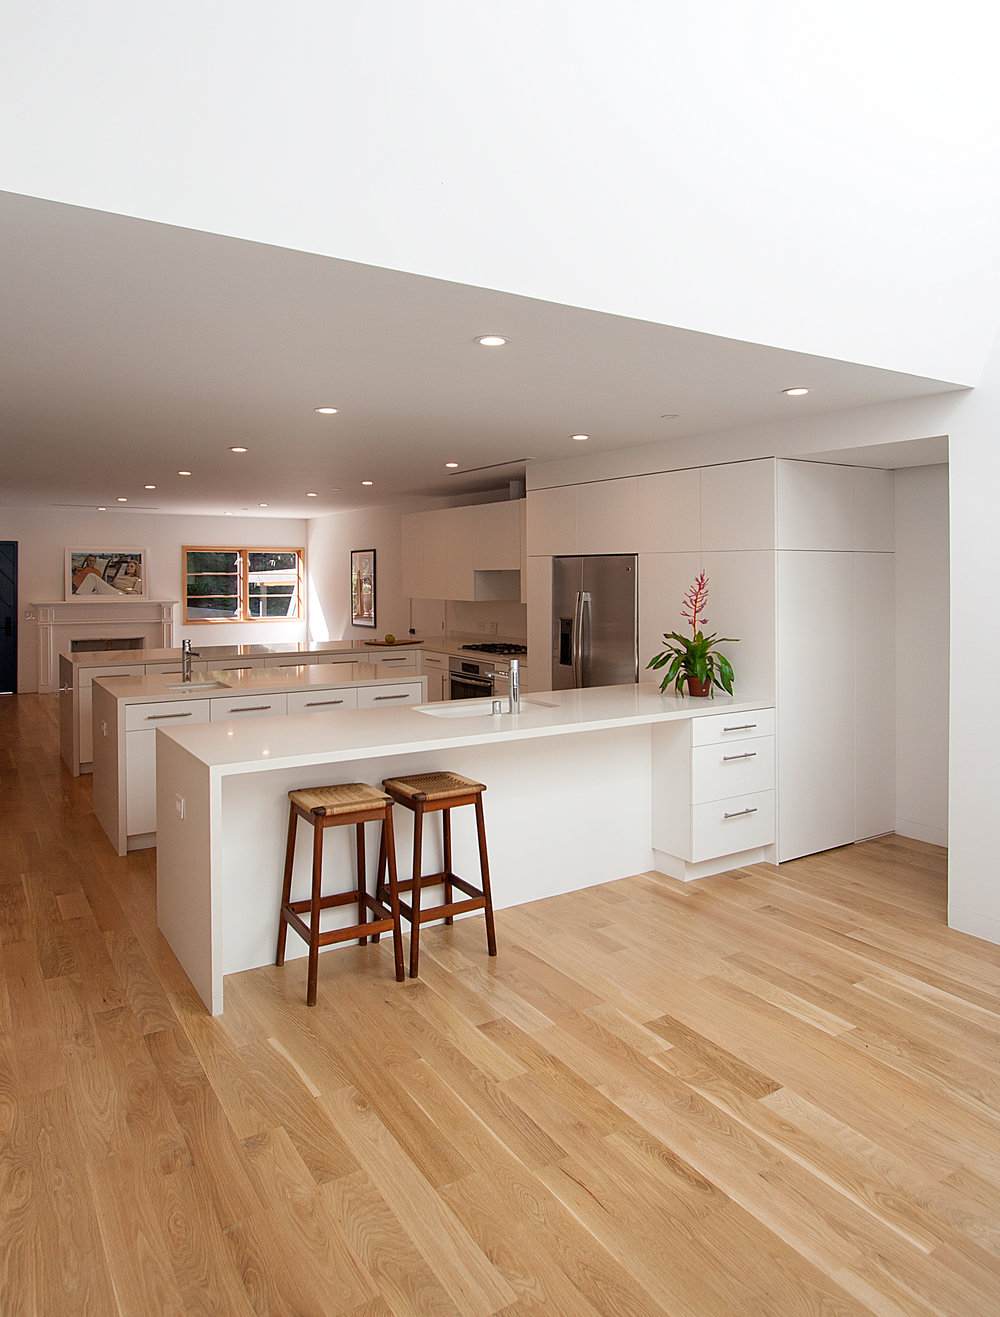 """The kitchen is the """"hub"""" of the home with bar seating, which transforms it into a social space."""